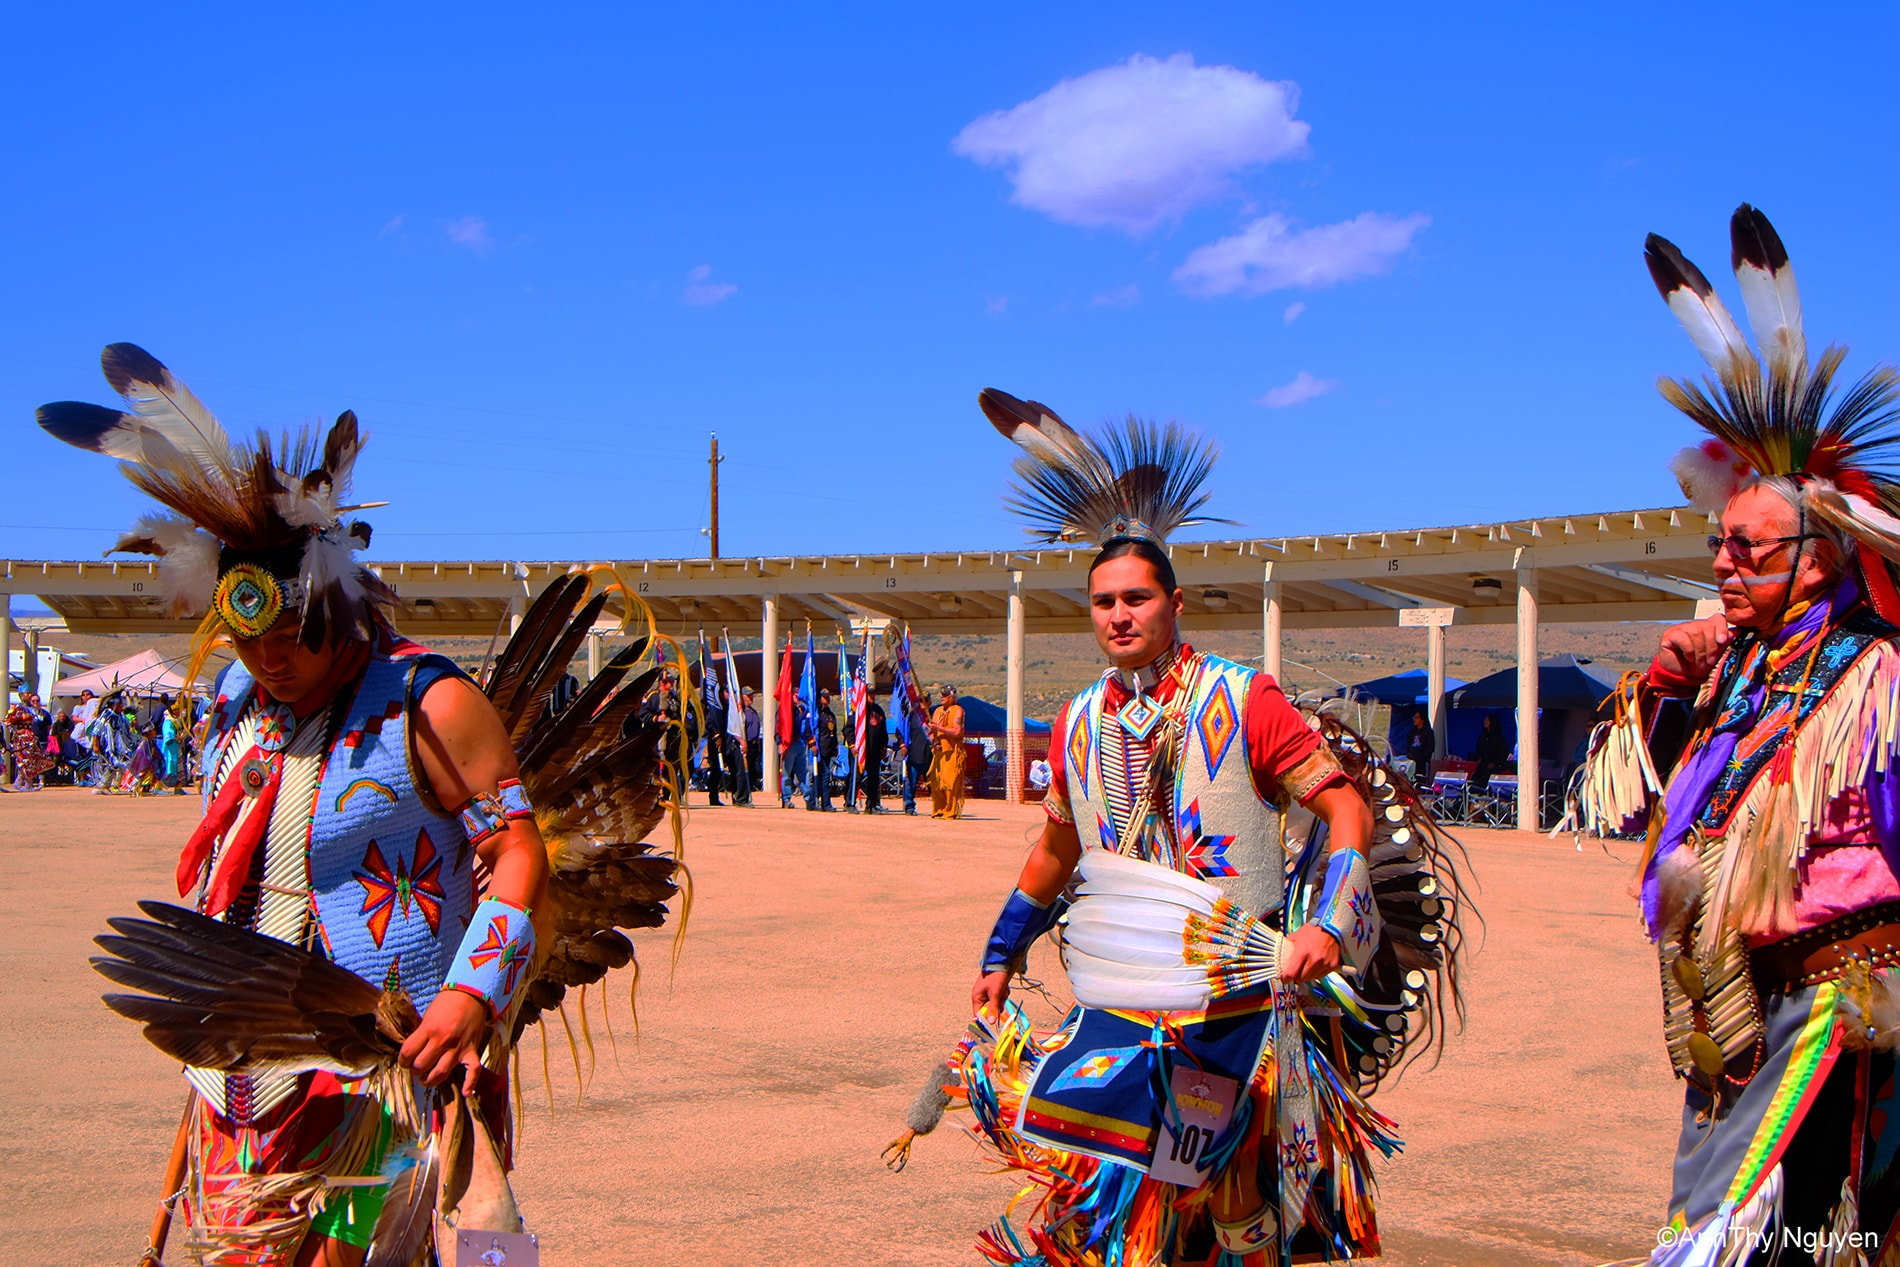 Dancers are entering Pow Wow celebration 8 - Native American Tradion